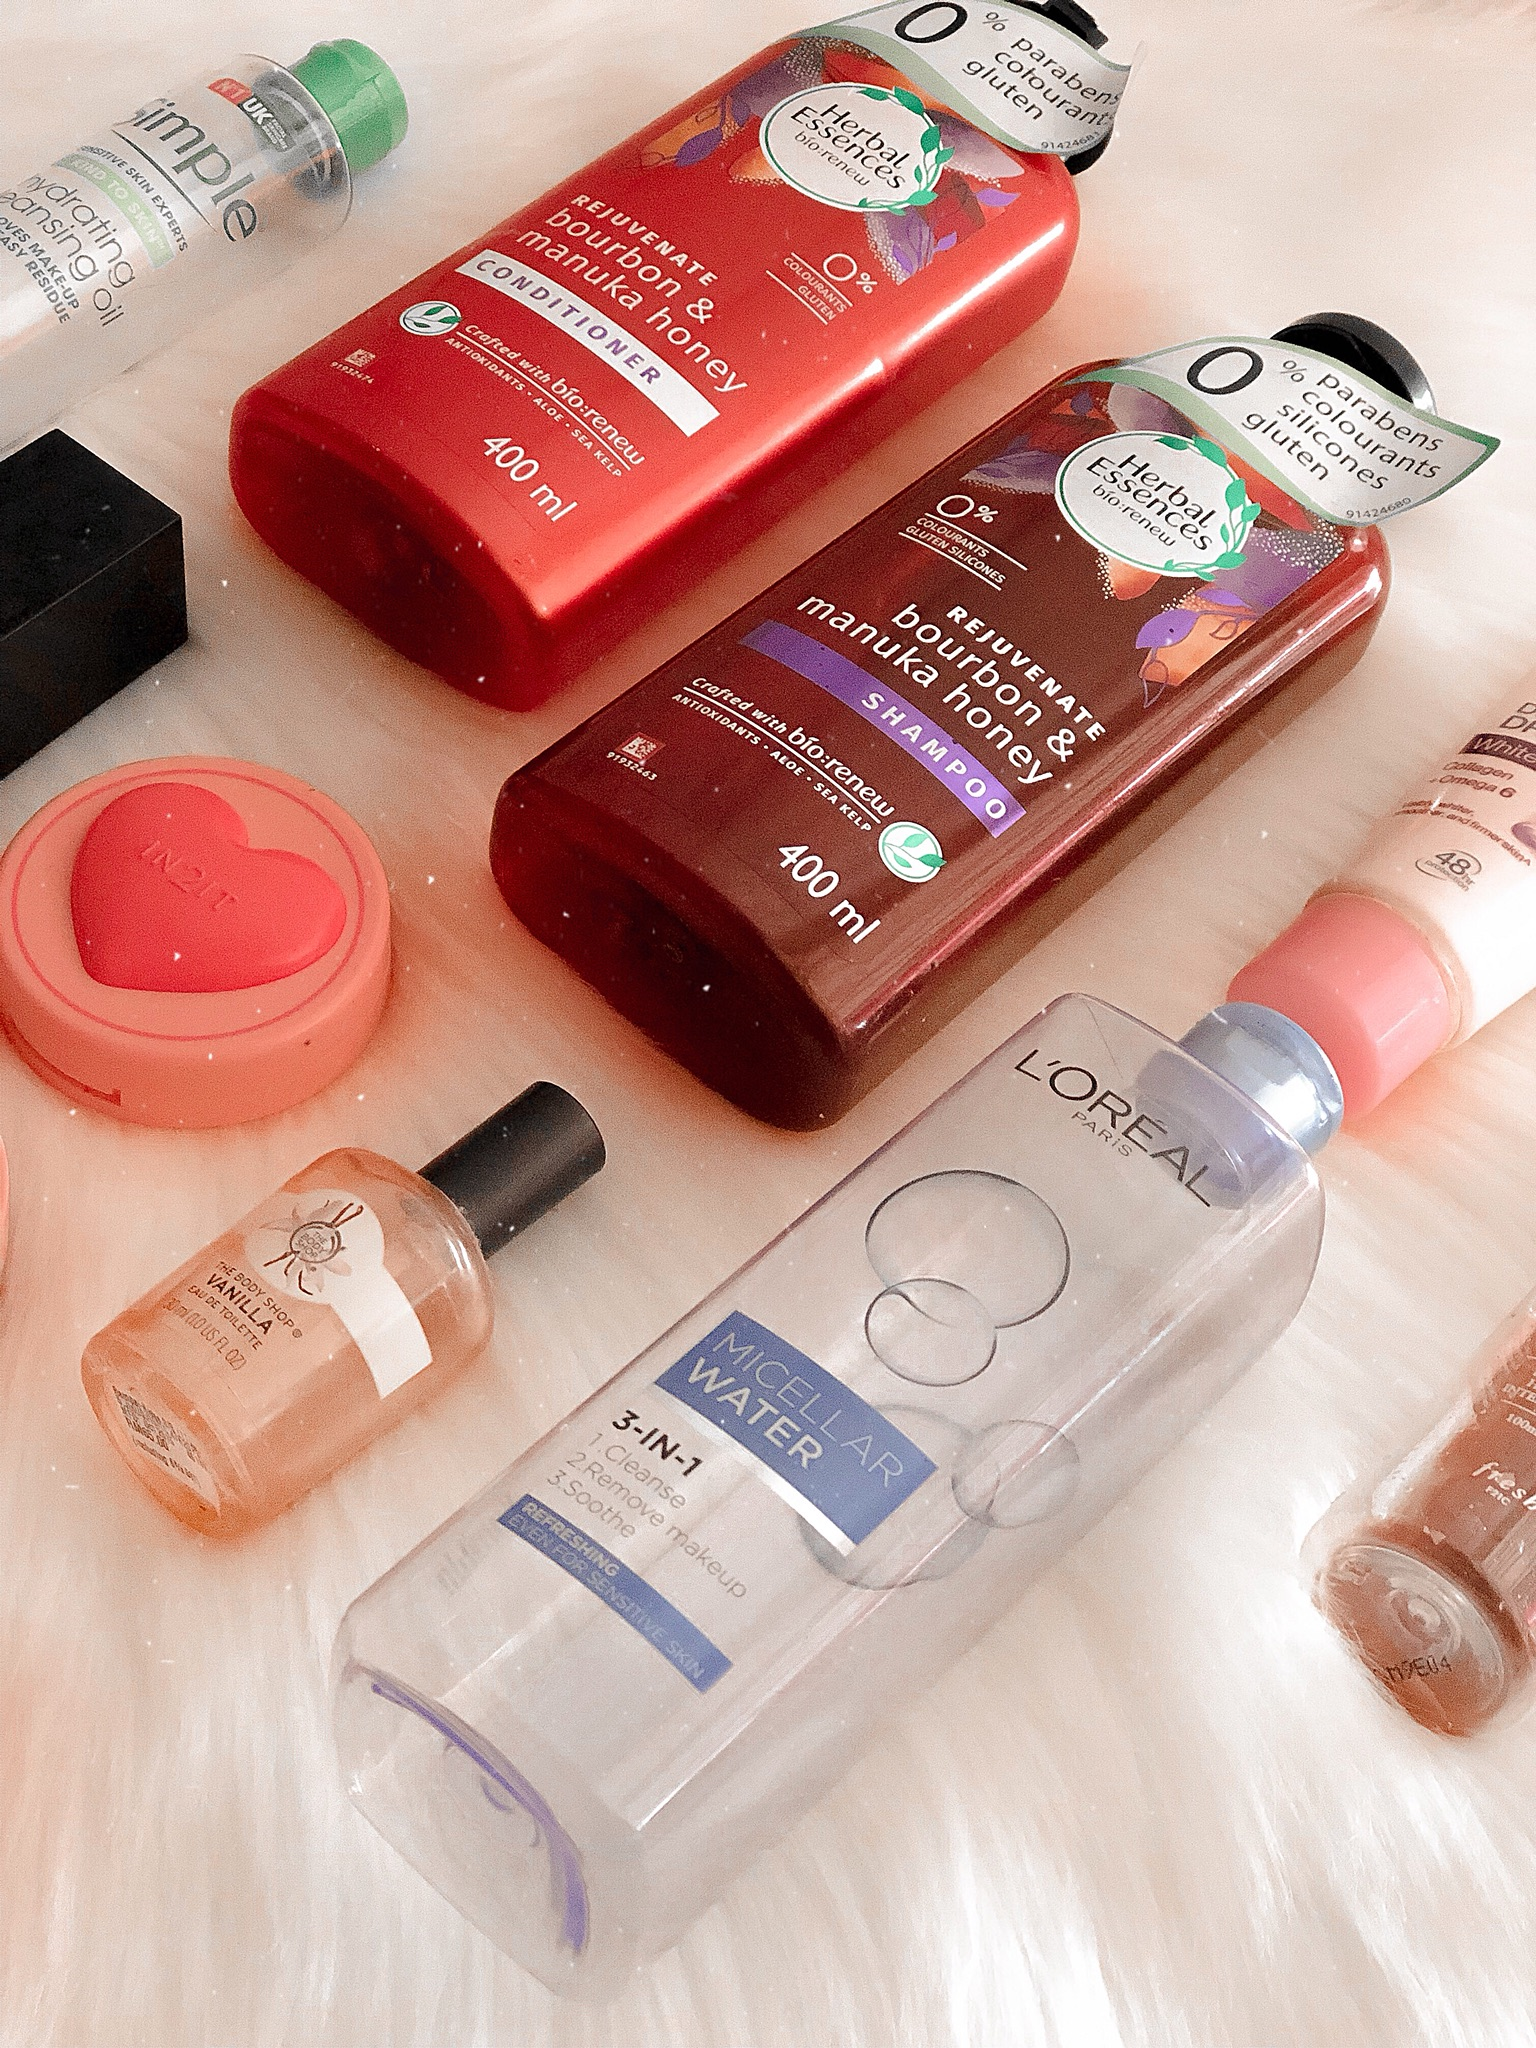 Beauty Product Empties #8